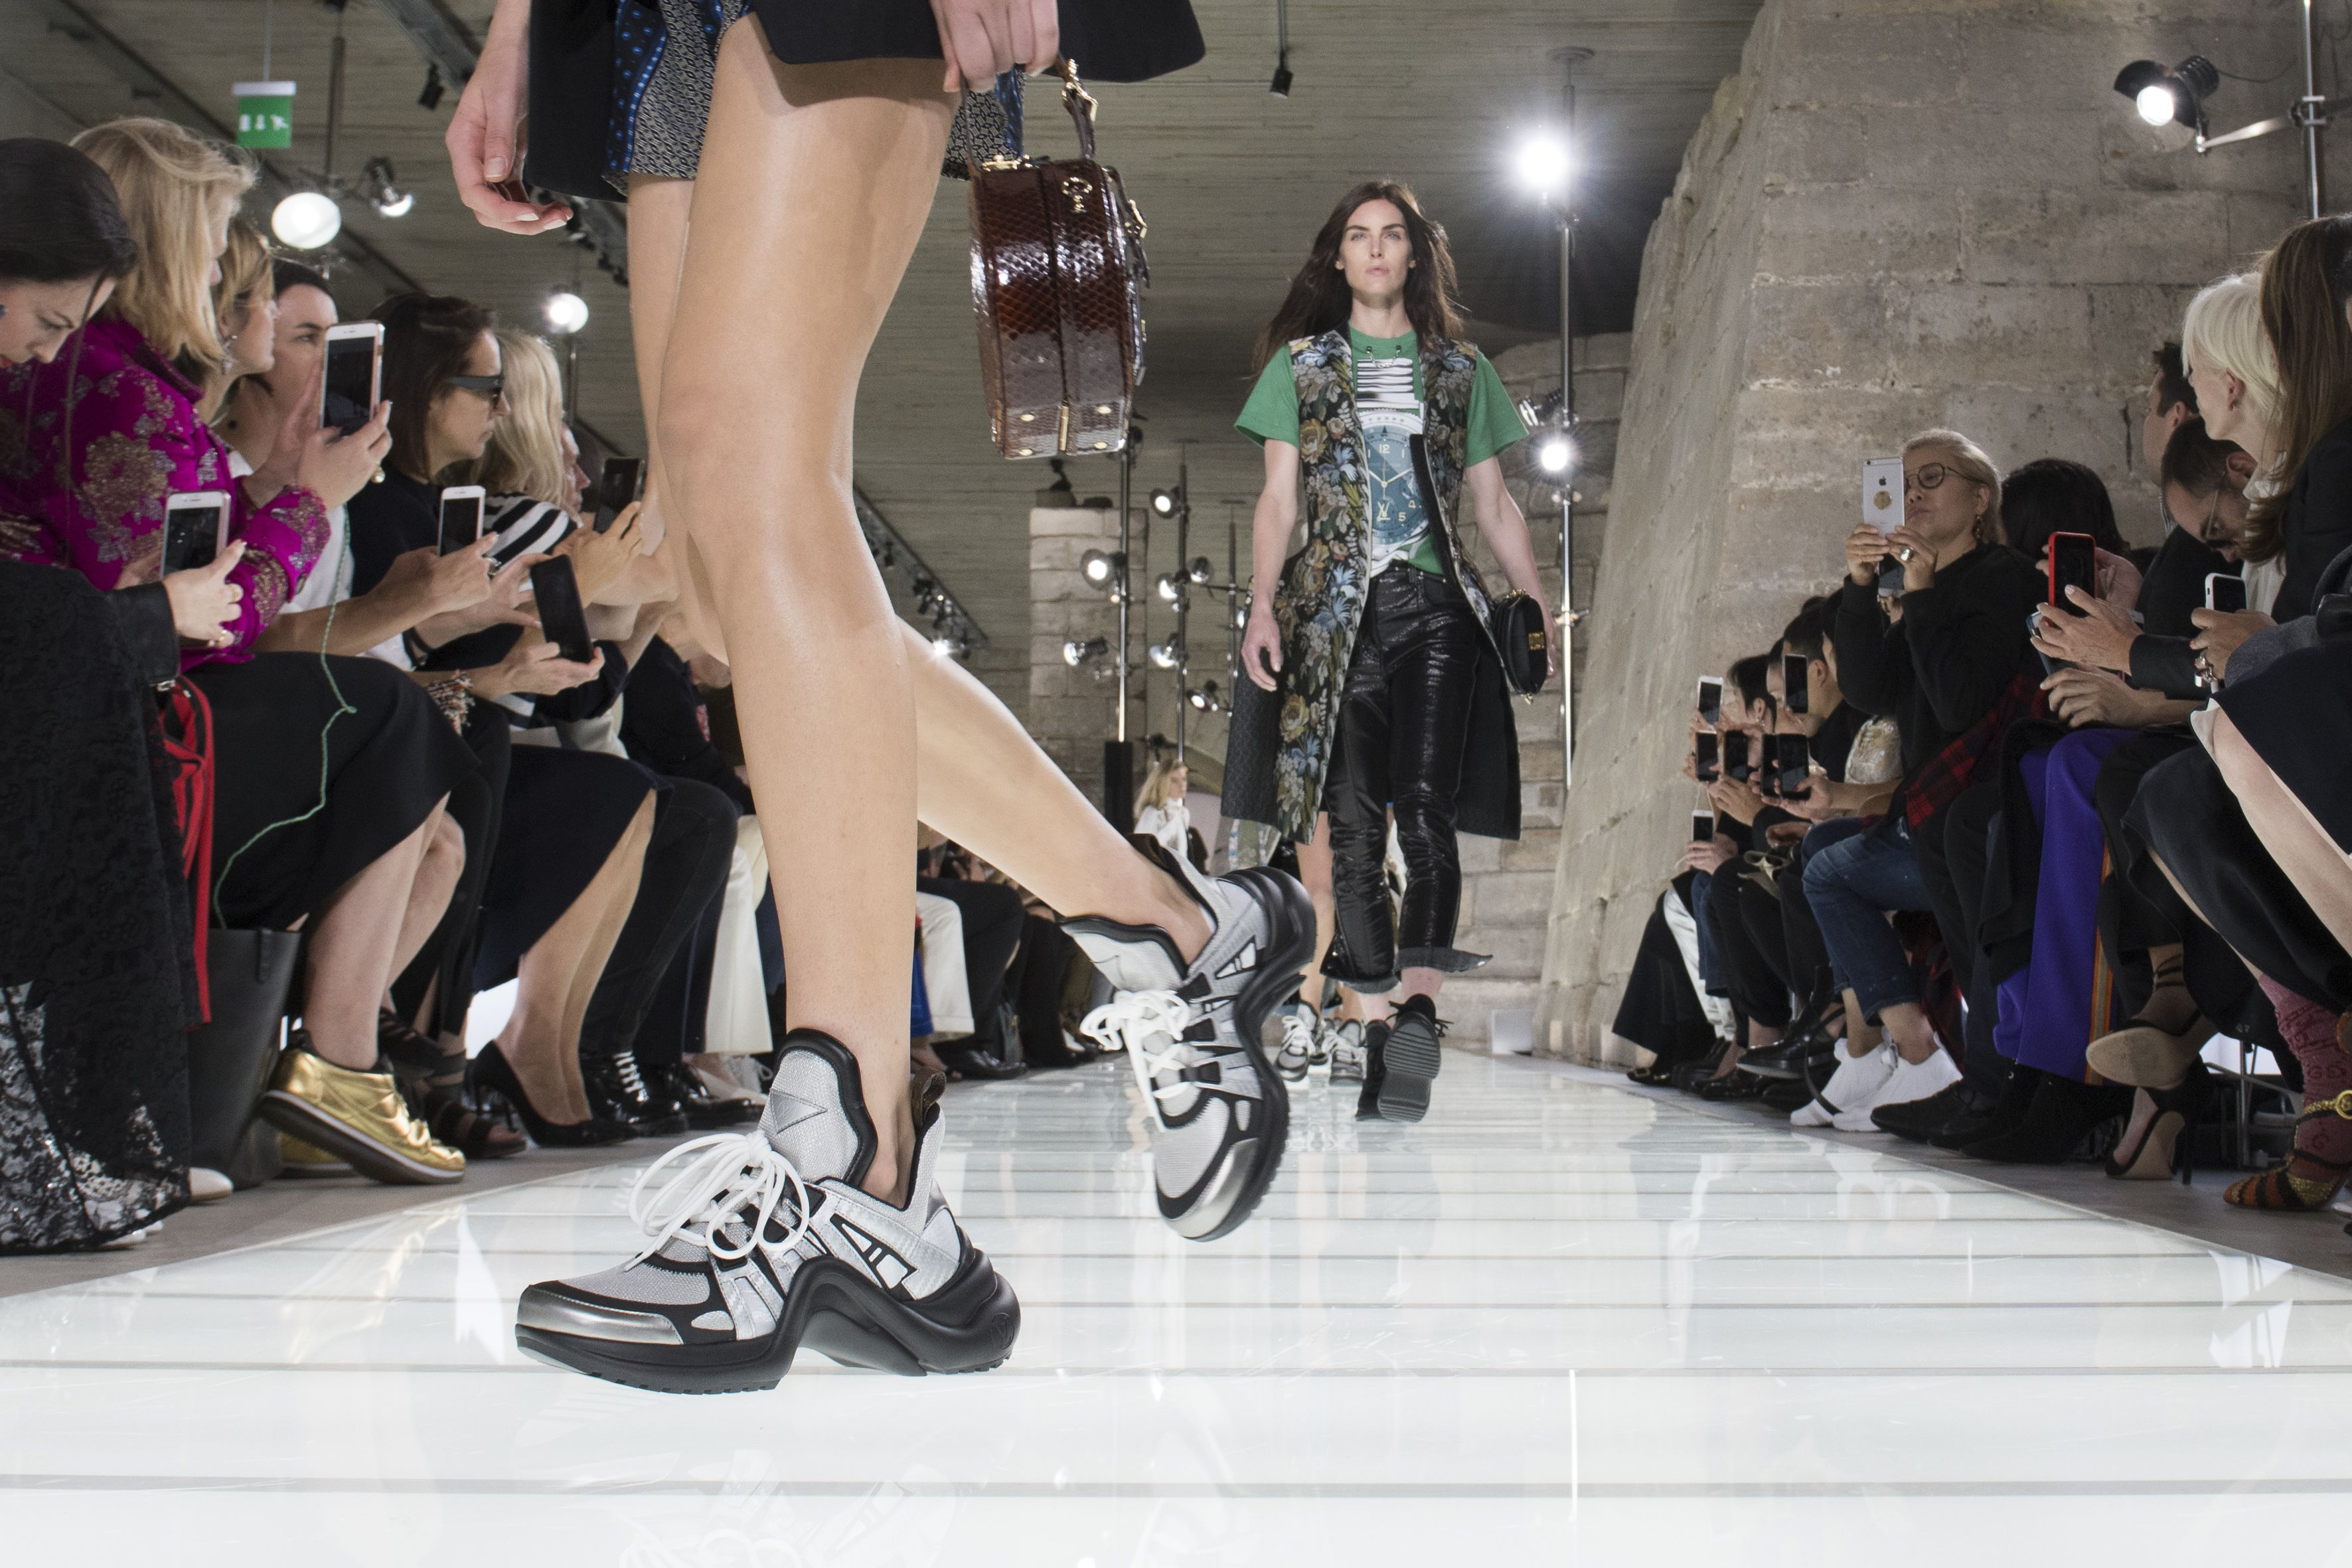 Discussion on this topic: French Girls This Shoe Trend Summer 2019, french-girls-this-shoe-trend-summer-2019/